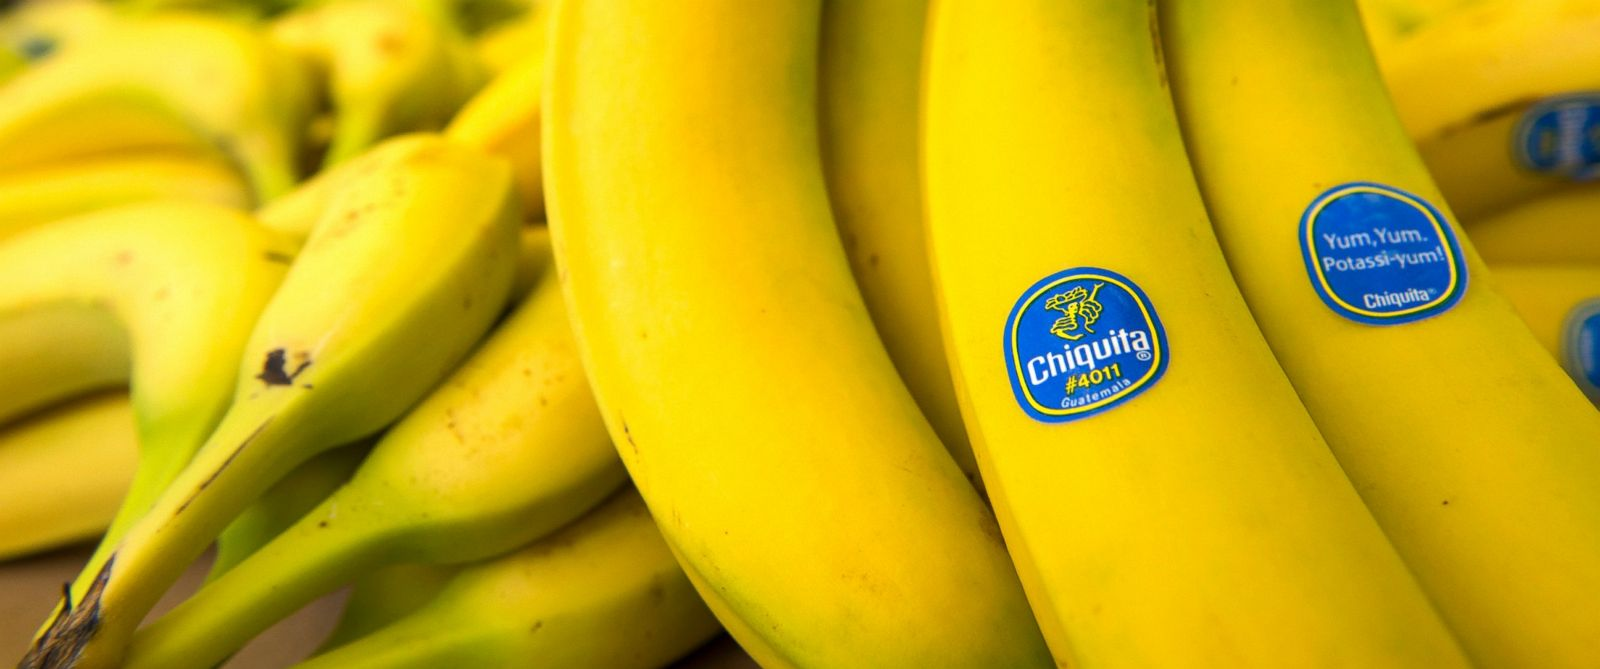 PHOTO: Chiquita Brands International Inc. bananas are arranged for a photograph at Union Street Produce Co. in San Francisco, Calif. on Feb. 19, 2013.